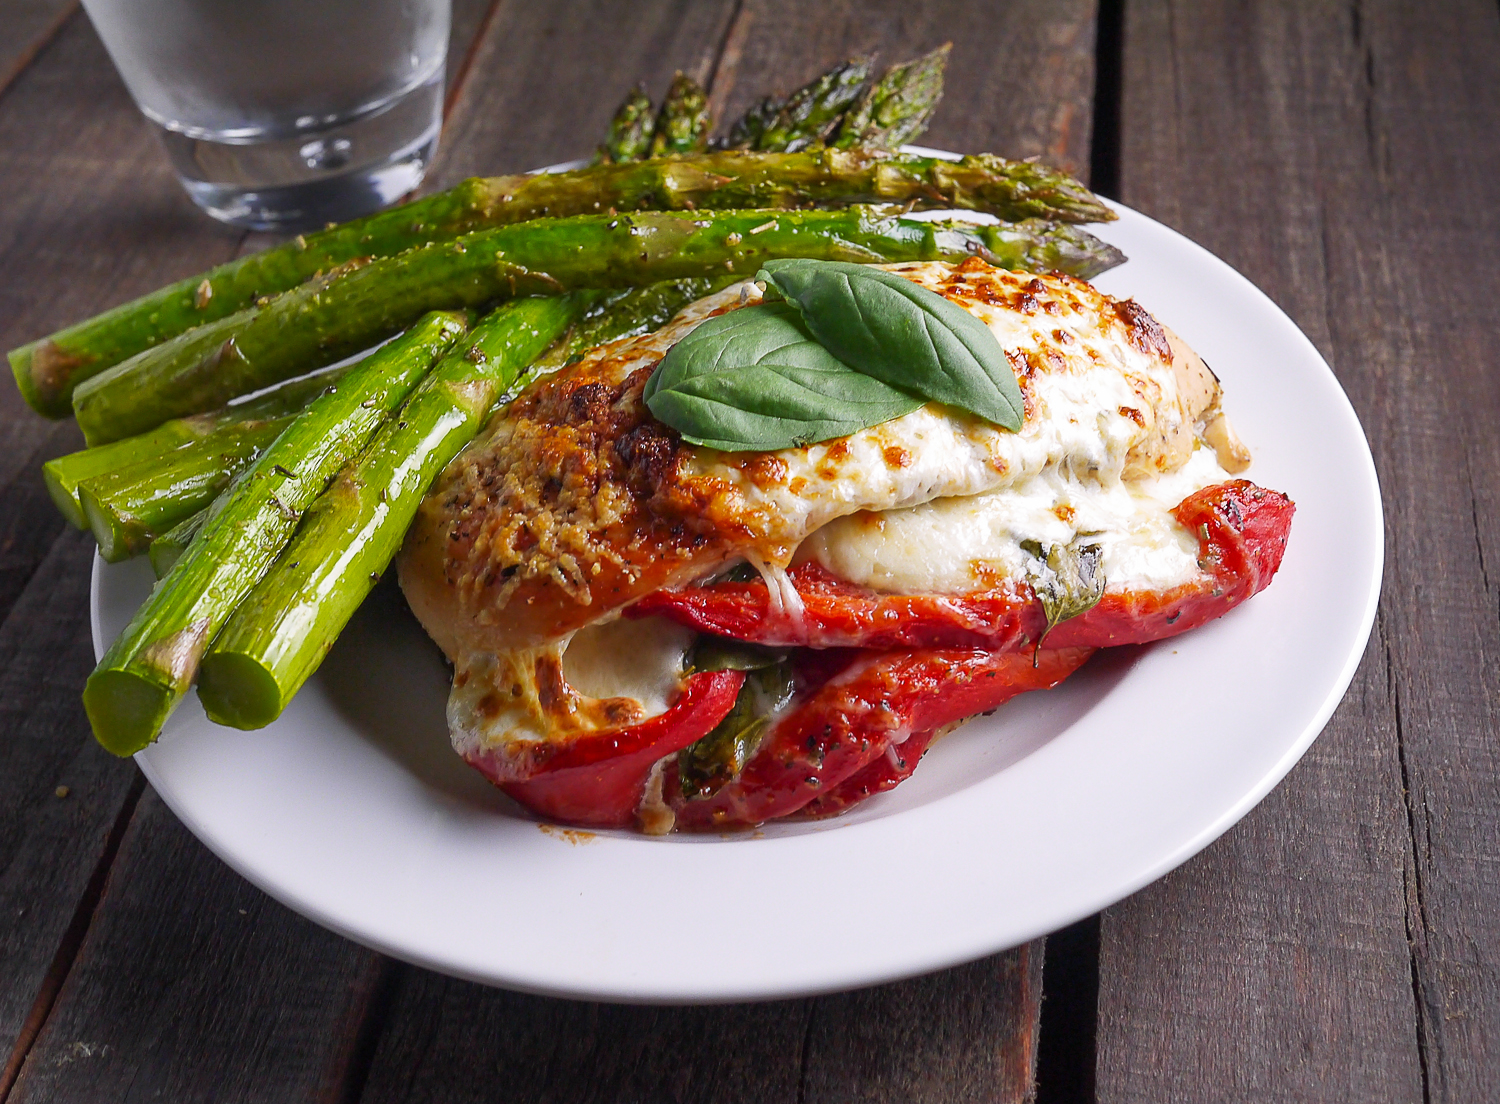 Image result for Roasted Red Pepper and Broccoli Stuffed Chicken